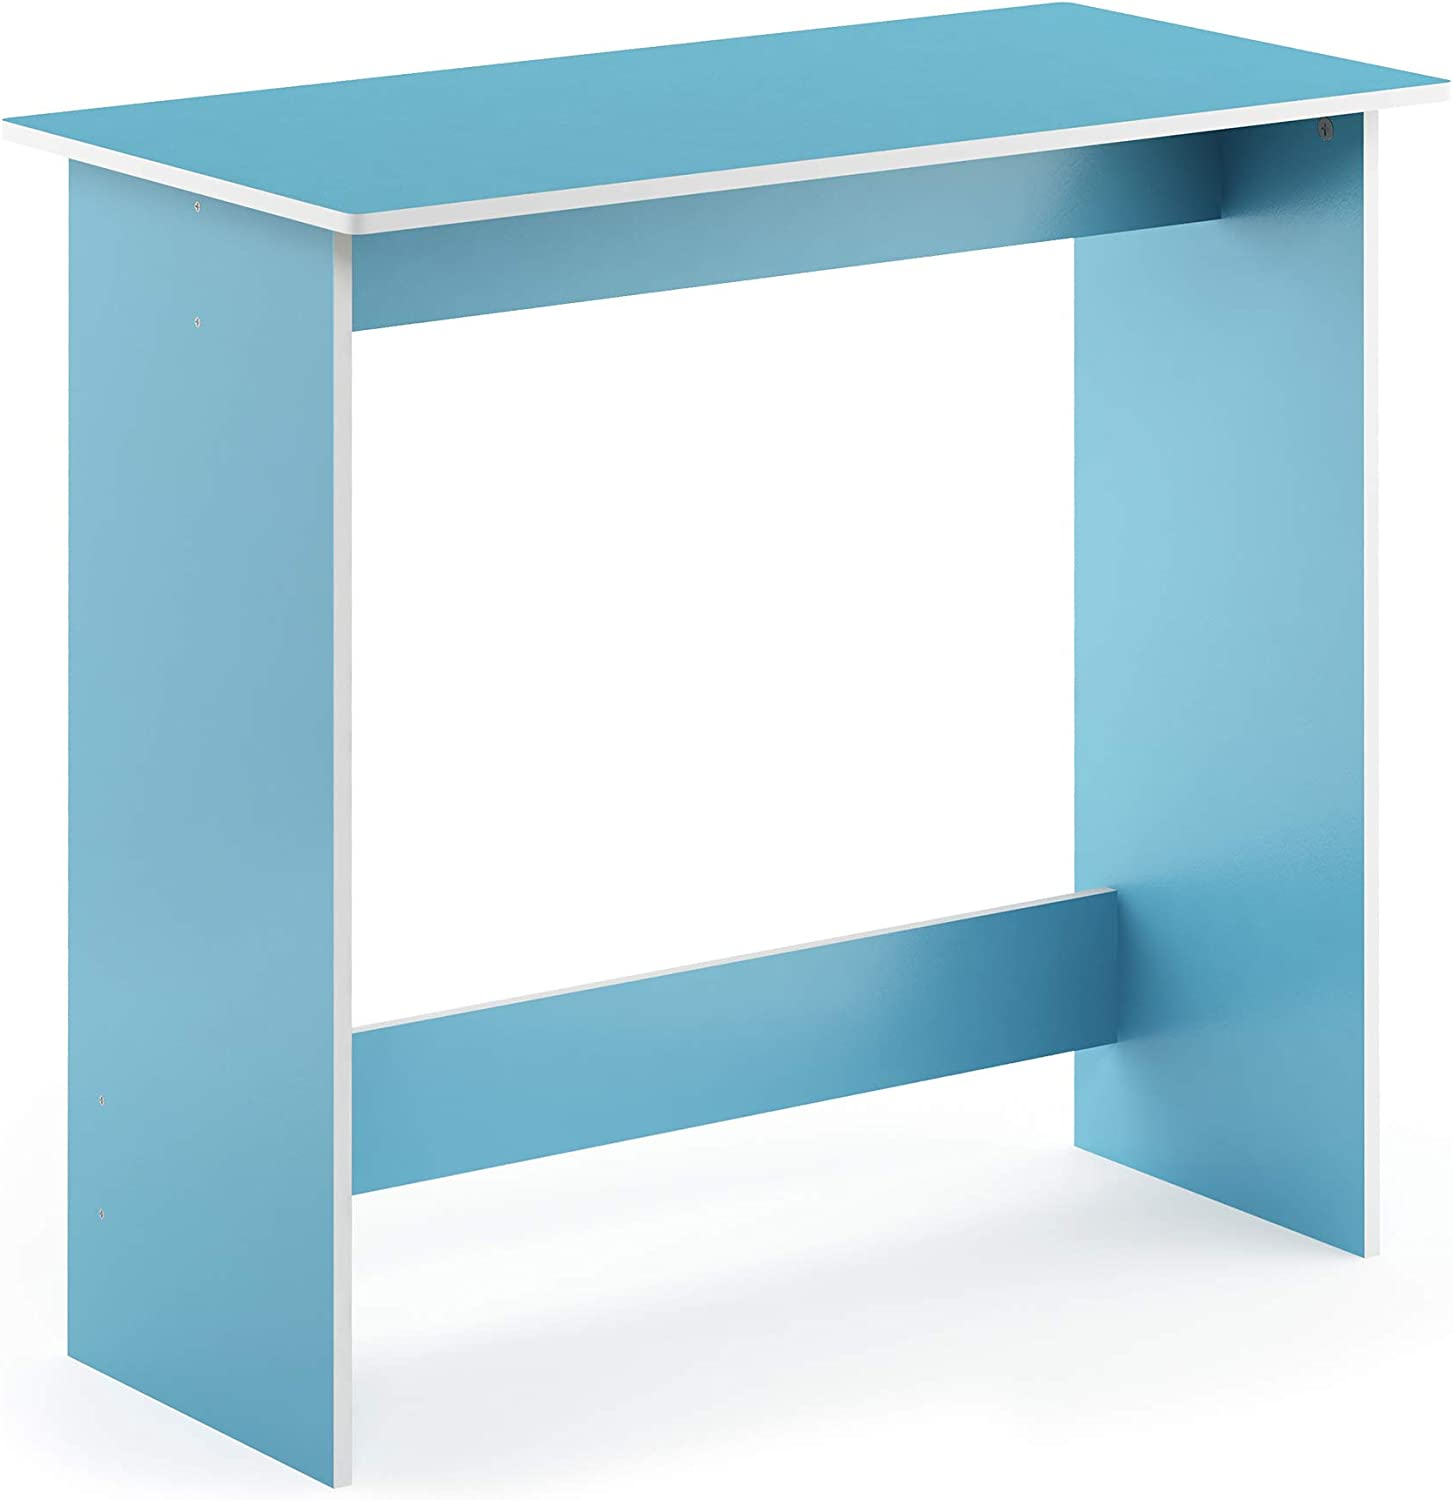 Furinno 14035LBL Simplistic Study Table, Light bluee